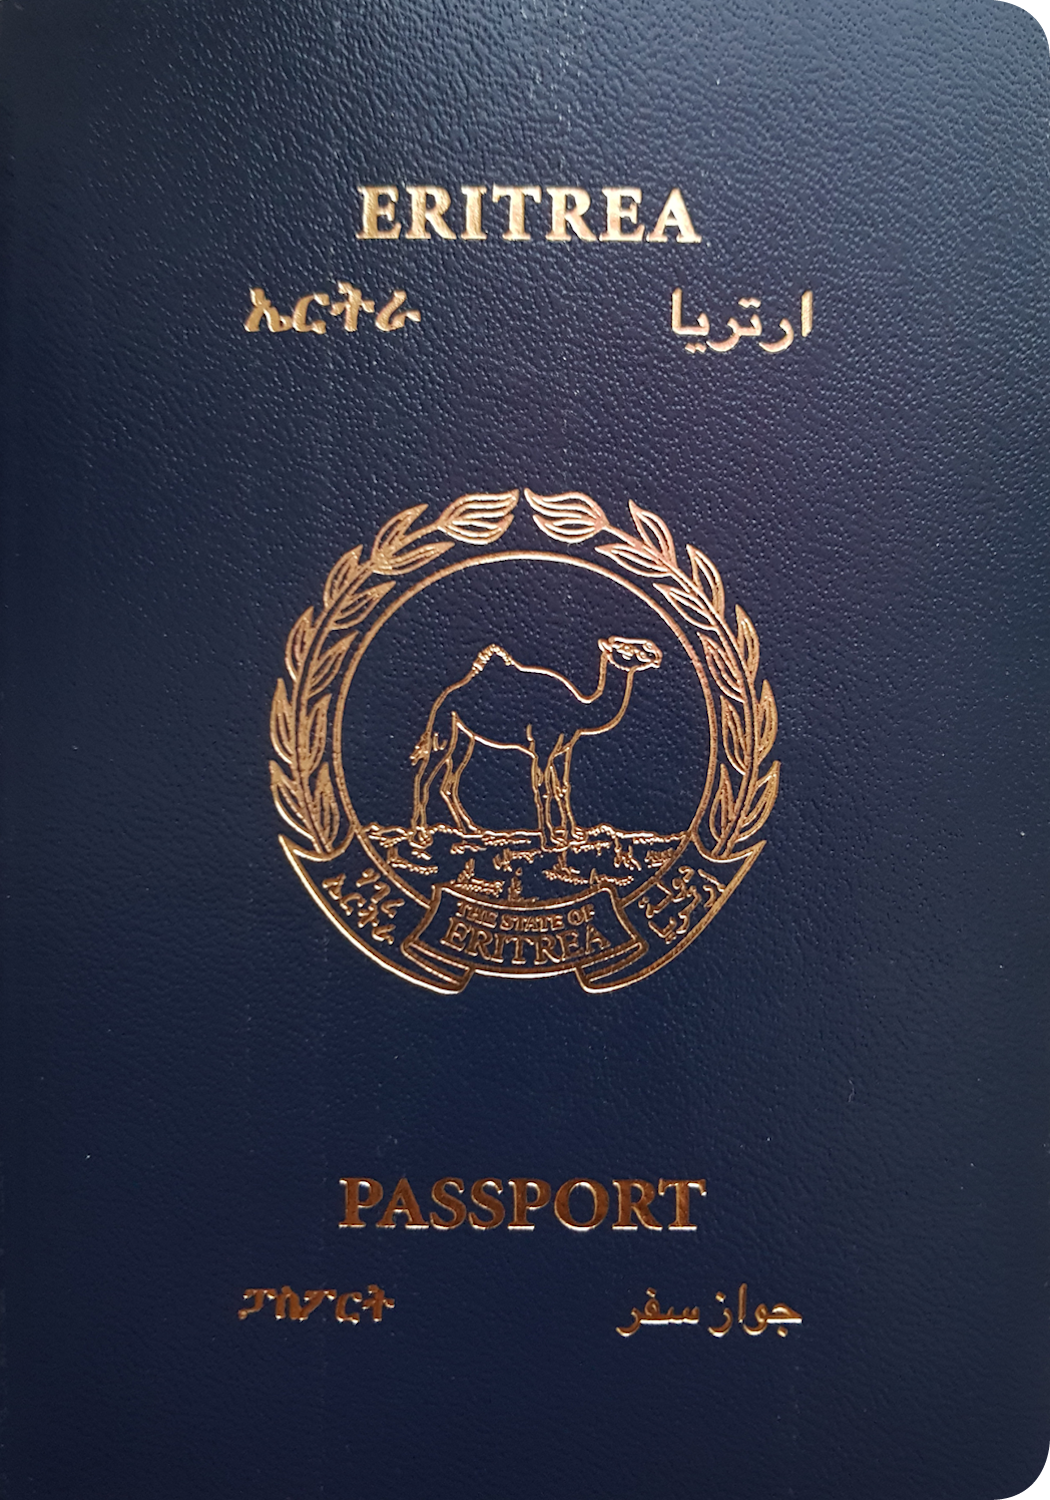 A regular or ordinary Eritrean passport - Front side